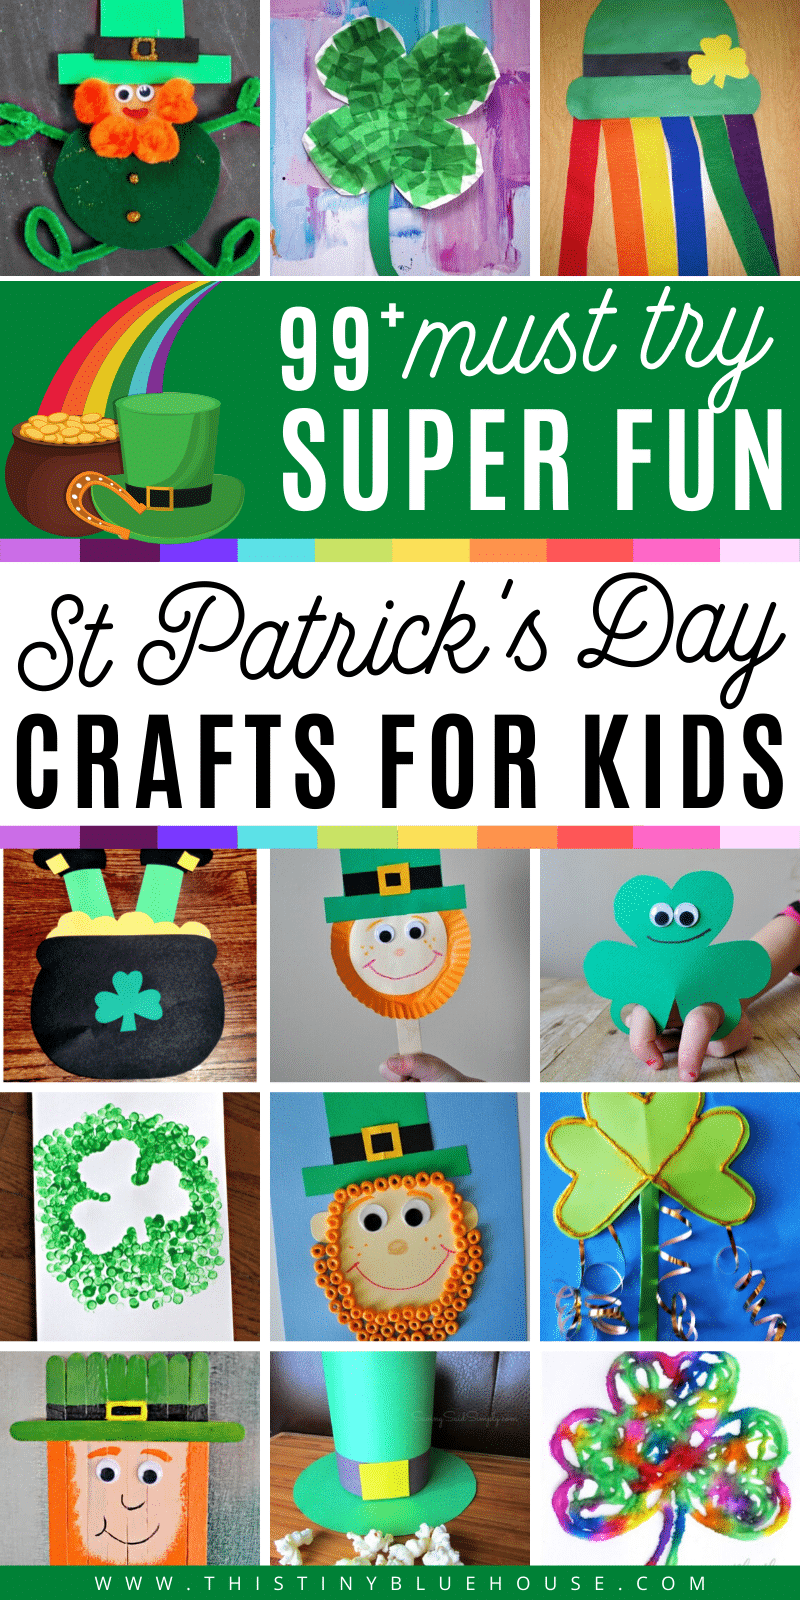 Get the kids excited about celebrating the luck o' the Irish with these fun and easy preschool St. Patricks Day Crafts for kids. With 100 crafts to pick you'll have hours of fun making these crafts with kids of all ages. #stpatricksdaycrafts #easystpatricksdaycrafts #stpaddyscraftsforkids #easystpatricksdaycraftsforkids #stpatricksdaycraftsforpreschoolers